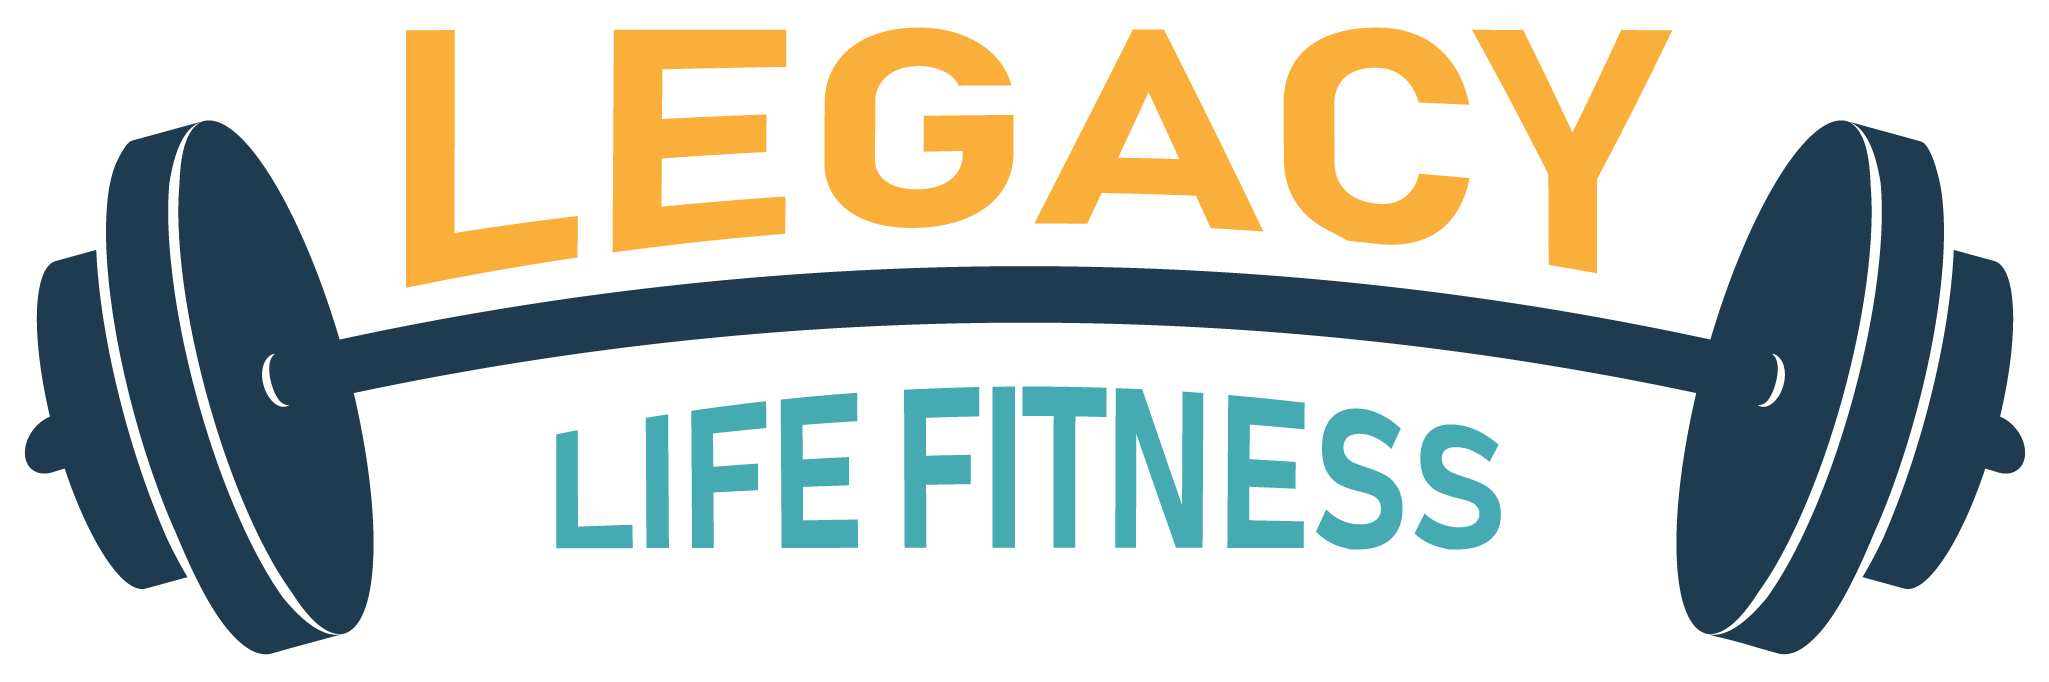 Legacy Life Fitness